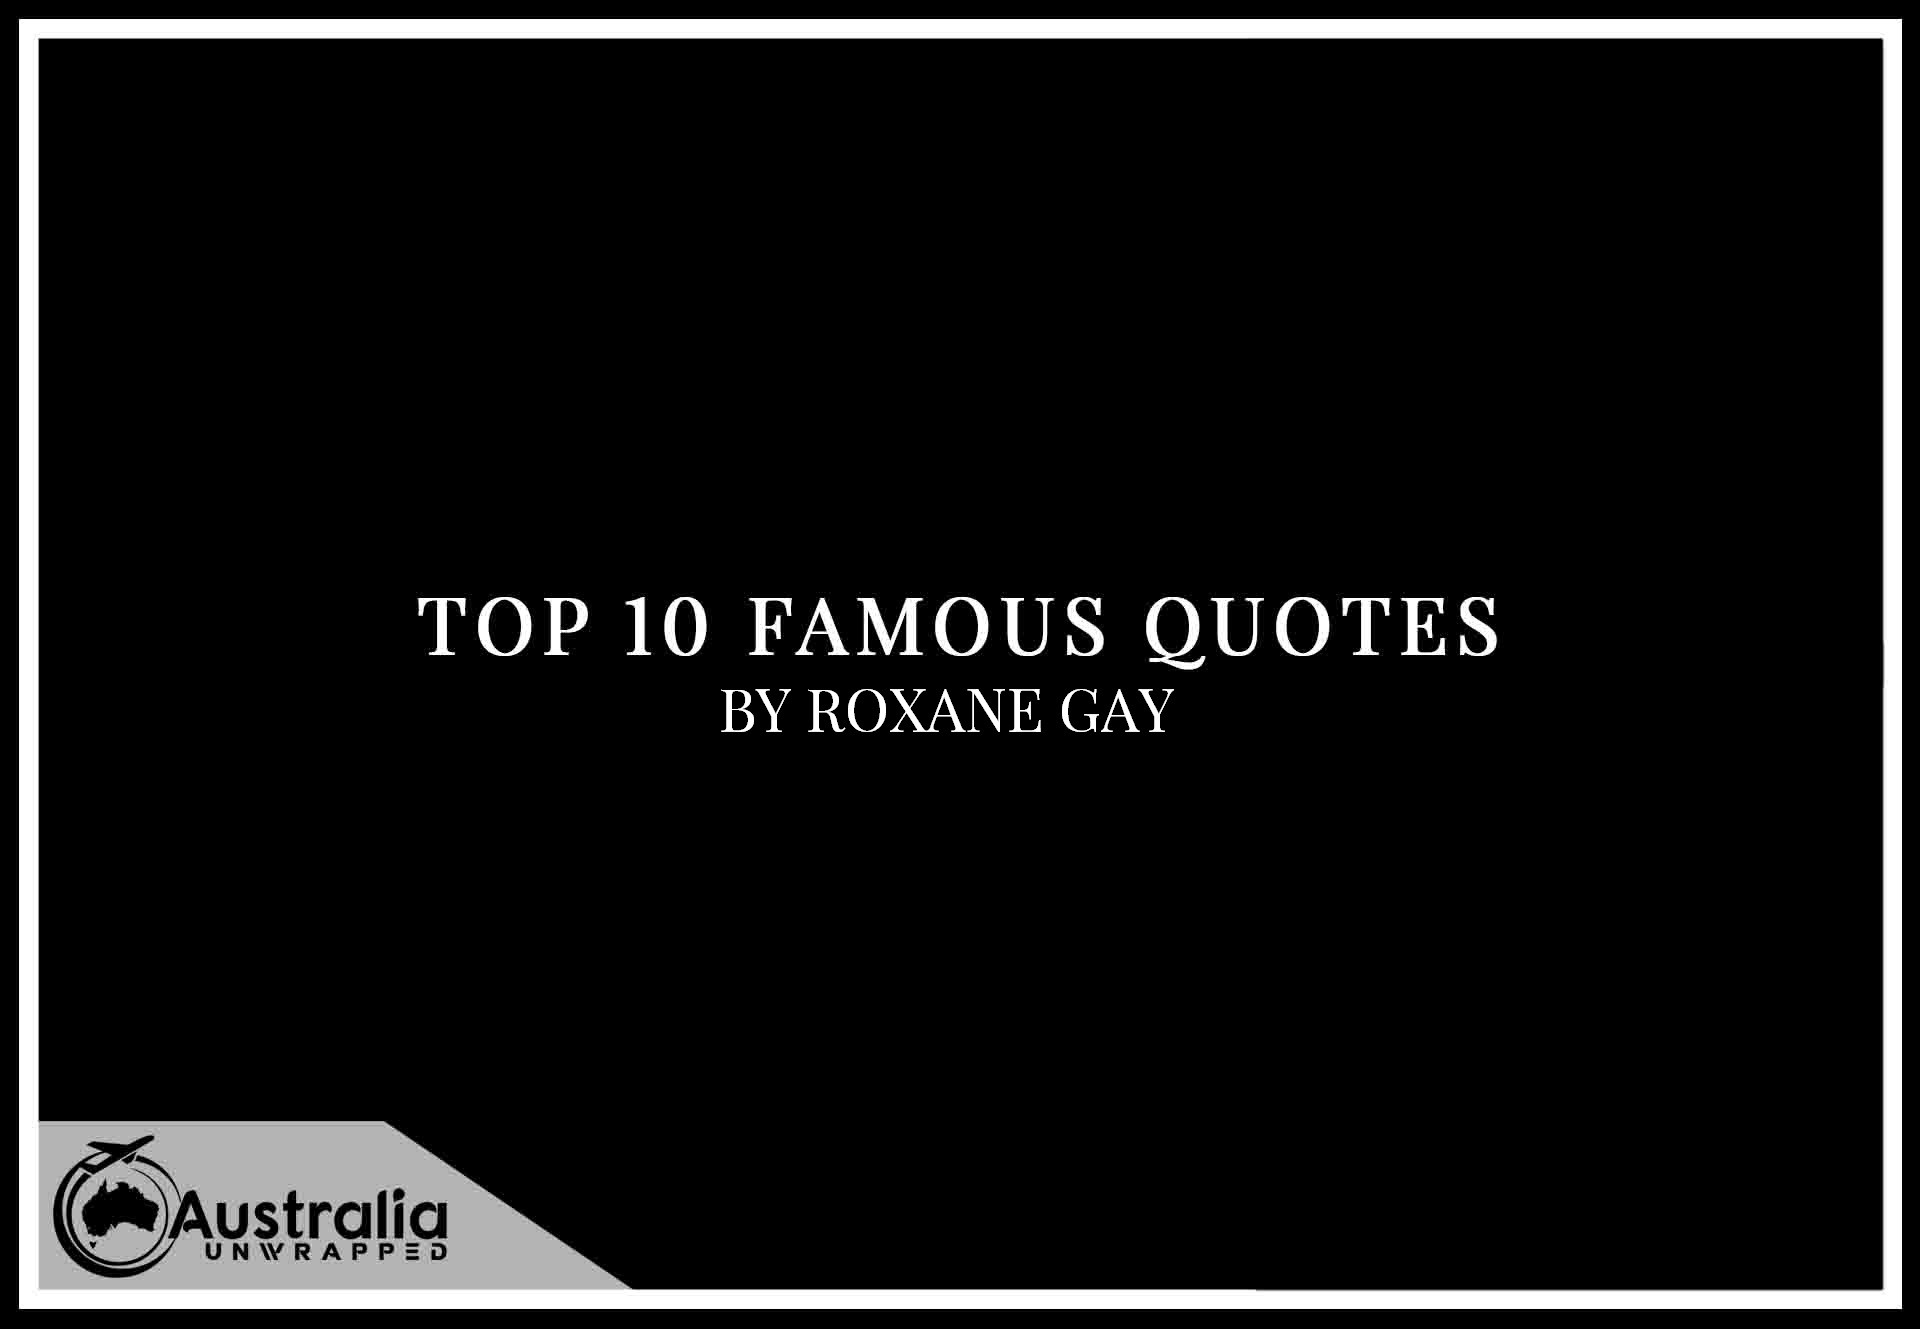 Top 10 Famous Quotes by Author Roxane Gay